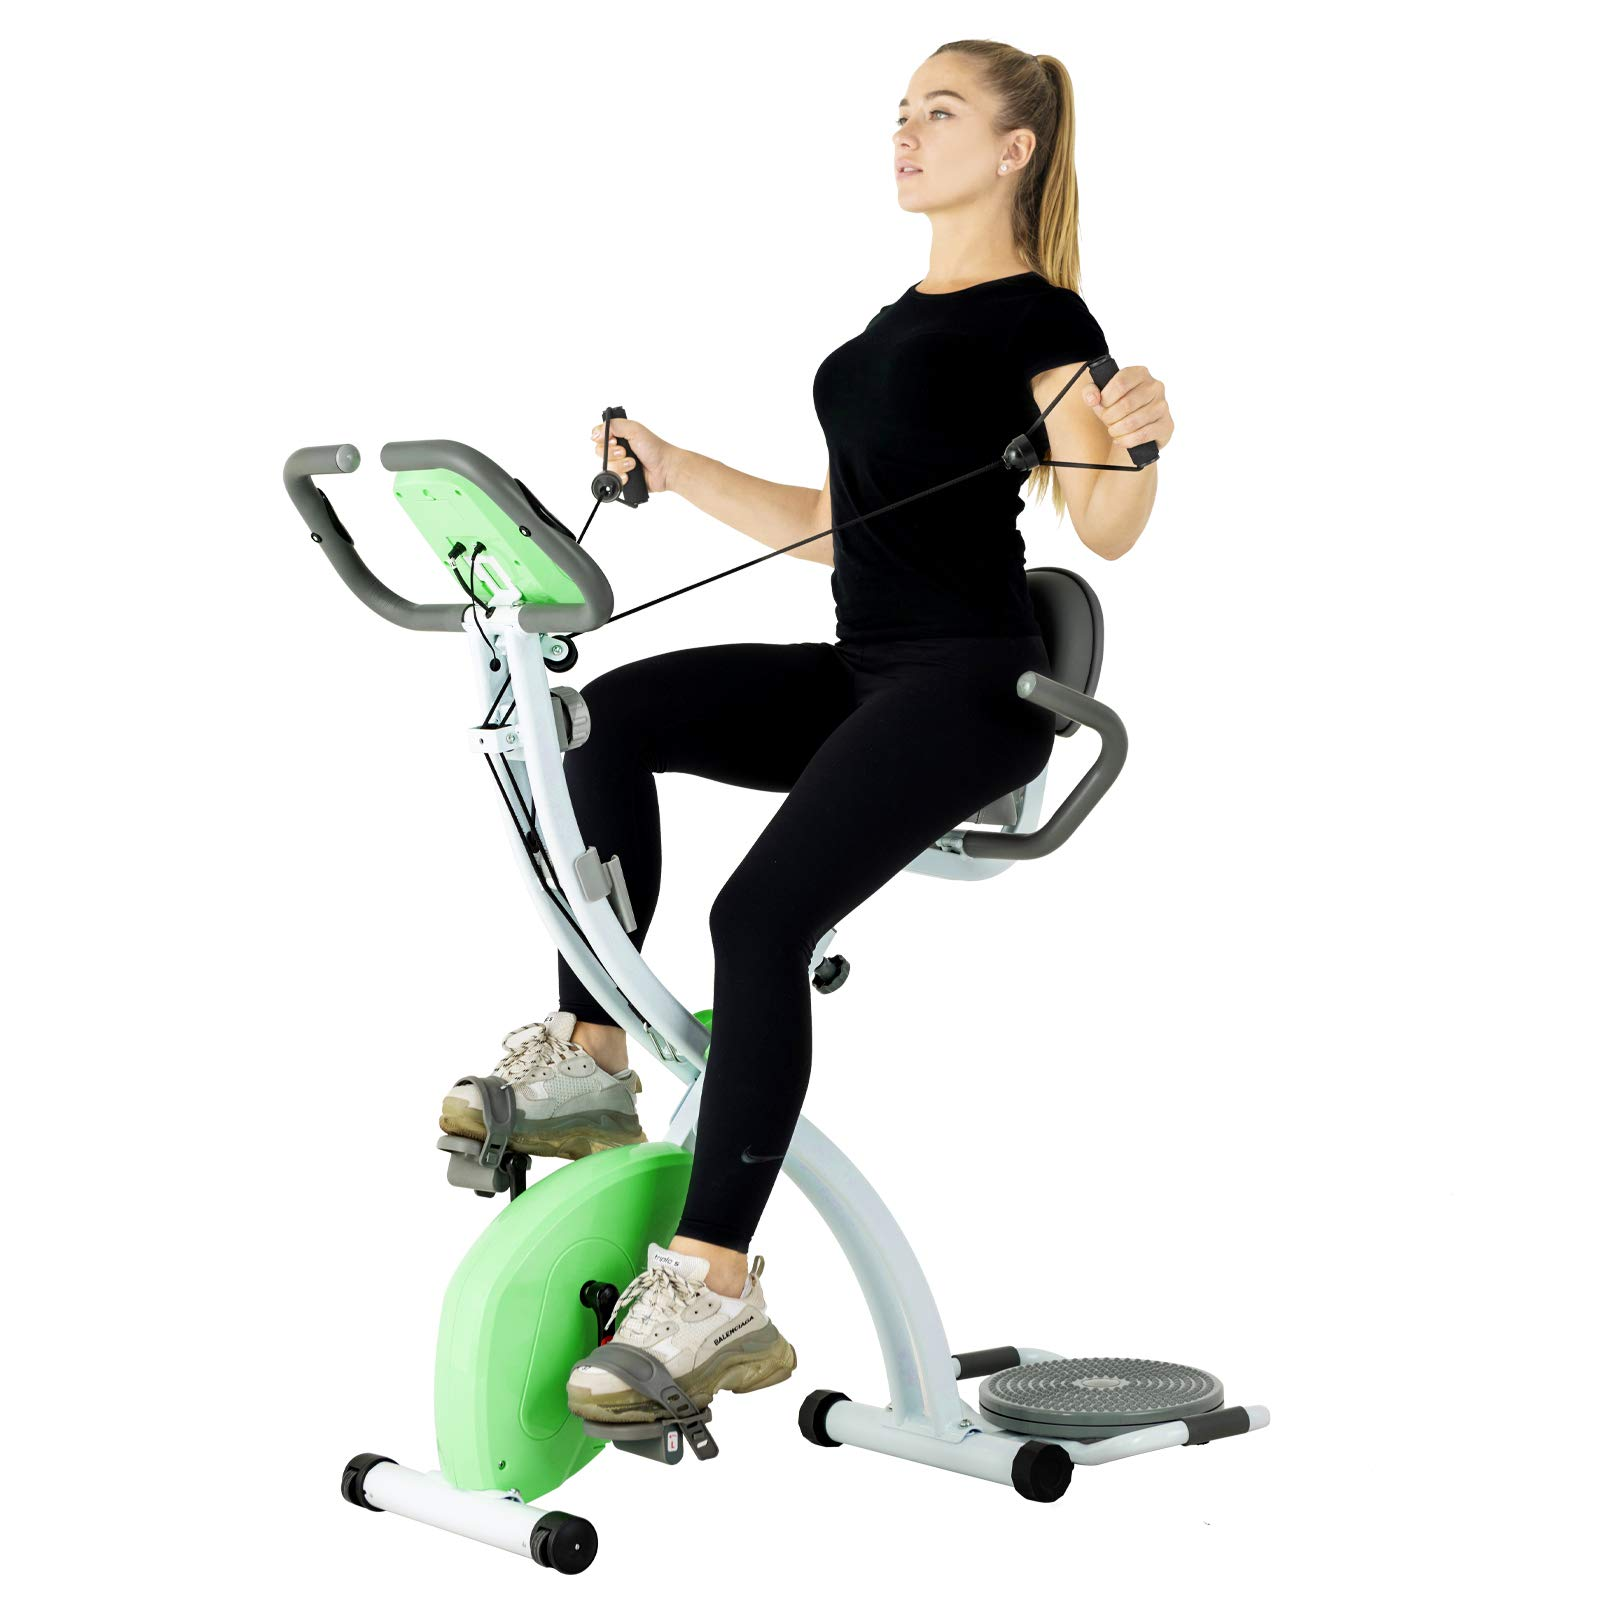 Murtisol Stationary Bike - Folding Indoor Exercise Bike with Twister Plate, Arm Resistance Bands, Extra Large&Adjustable Seat and Heart Monitor - Perfect Home Exercise Machine for Cardio, Bright Green by Murtisol